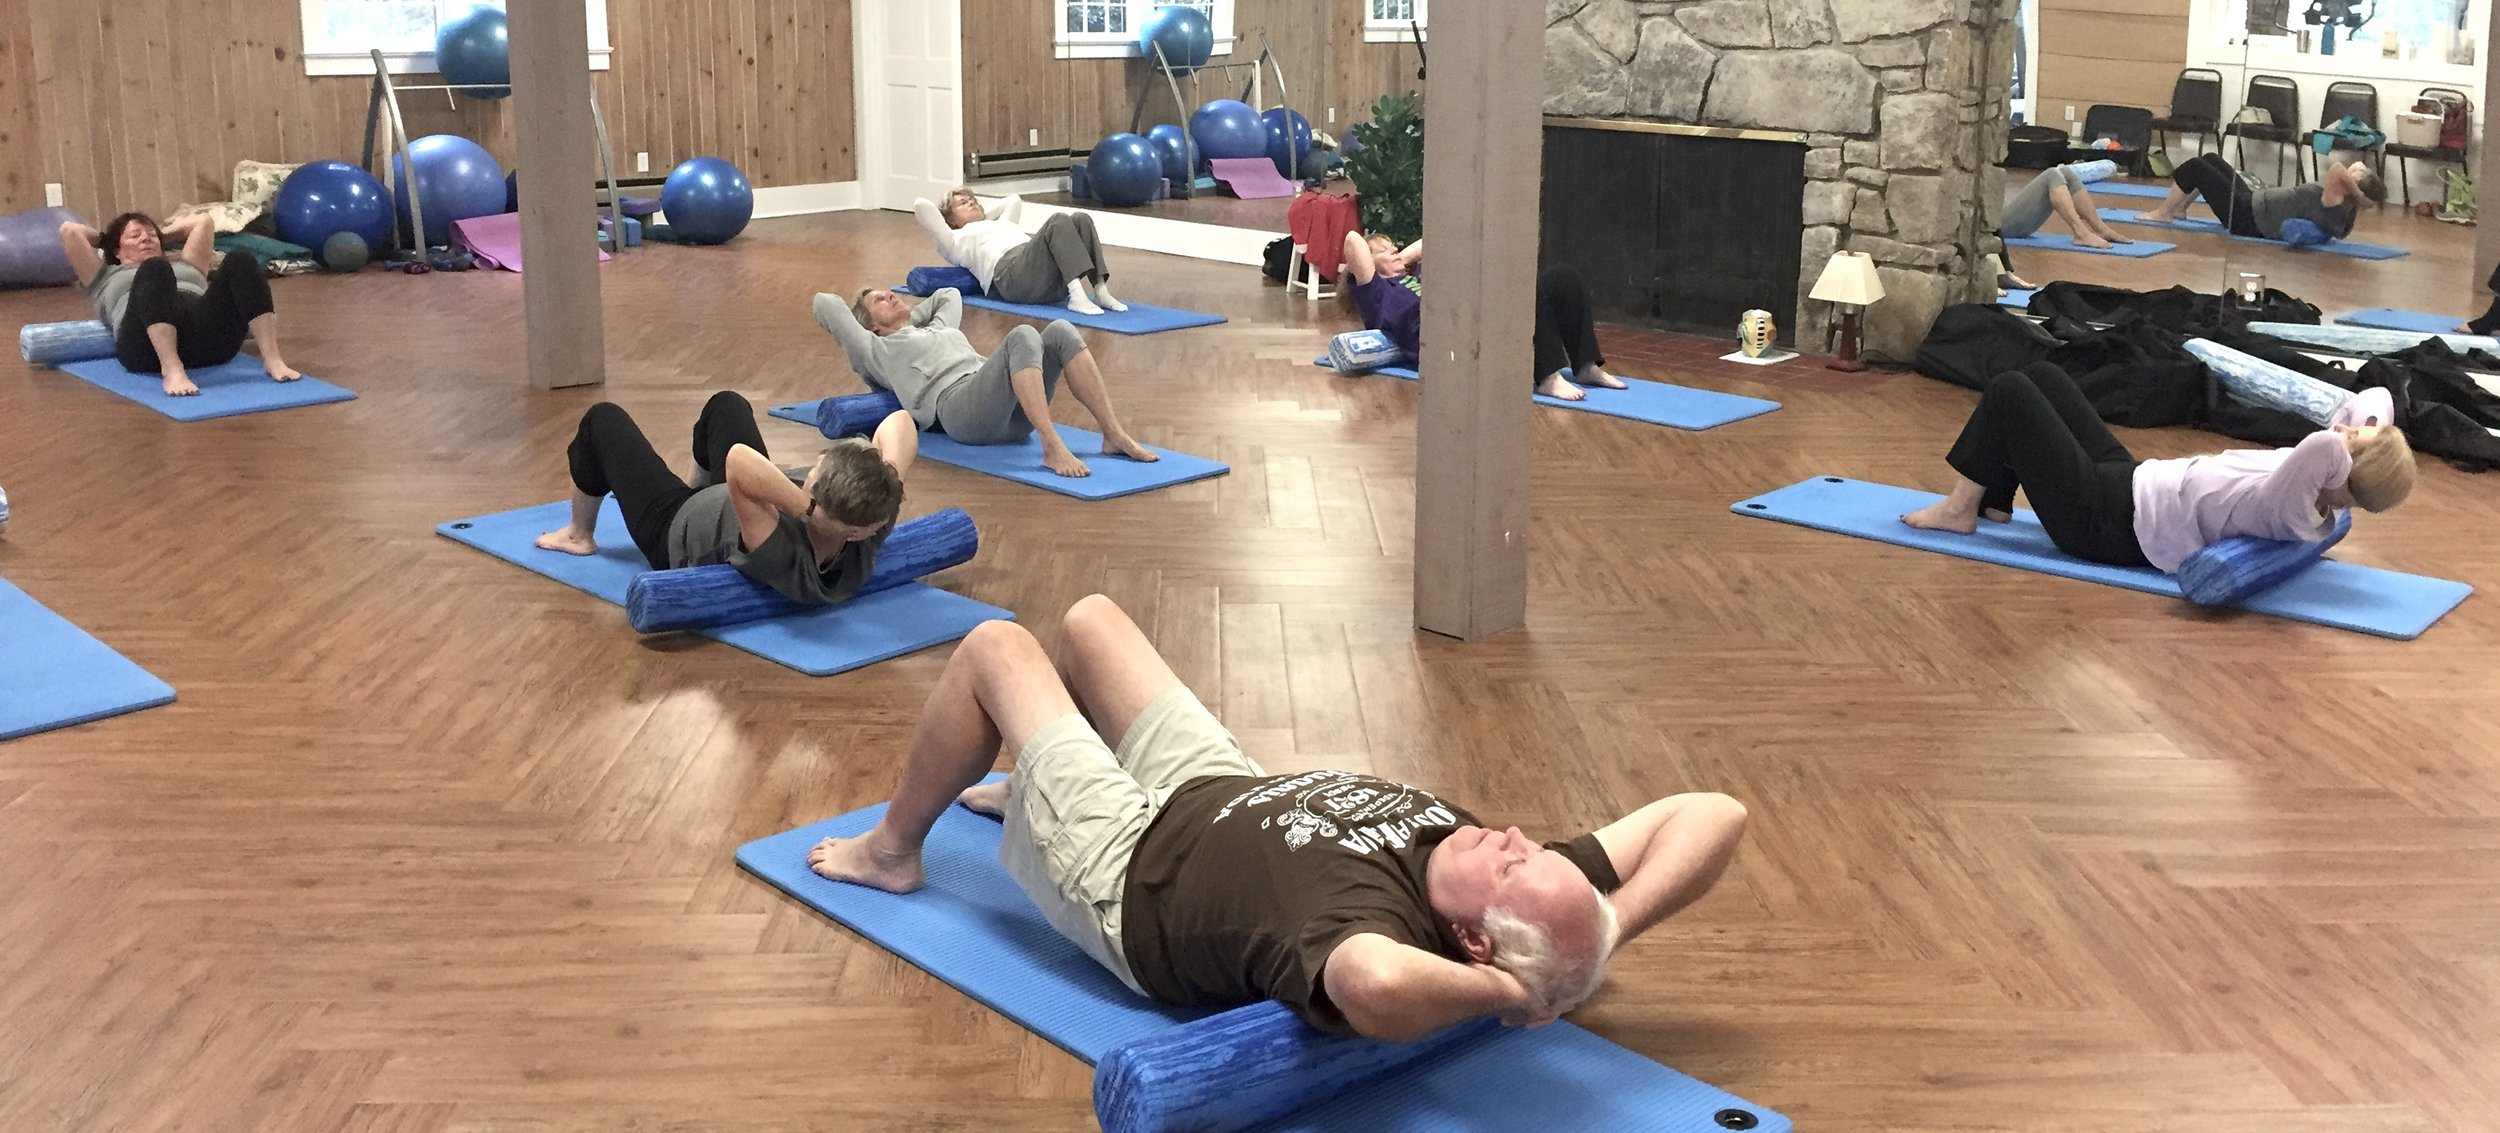 Pilates Mat Class at Laurel Ridge